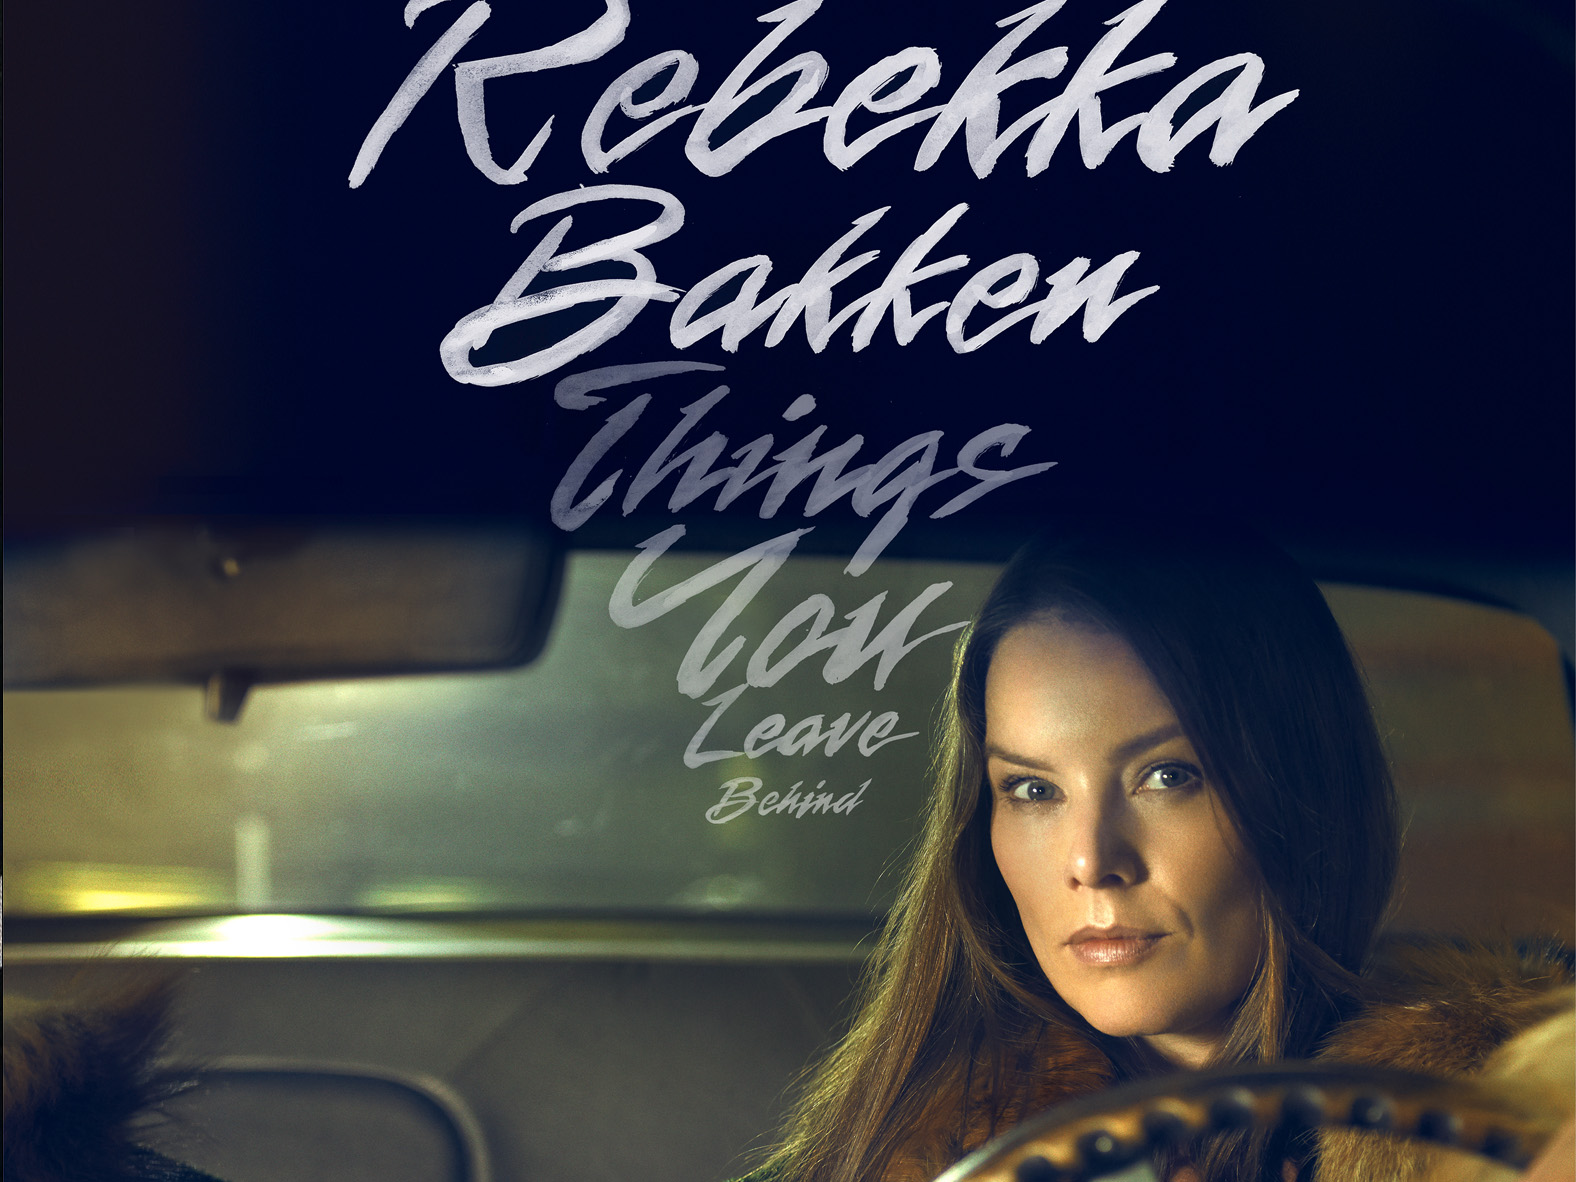 Rebekka Bakken Things You Leave Behind